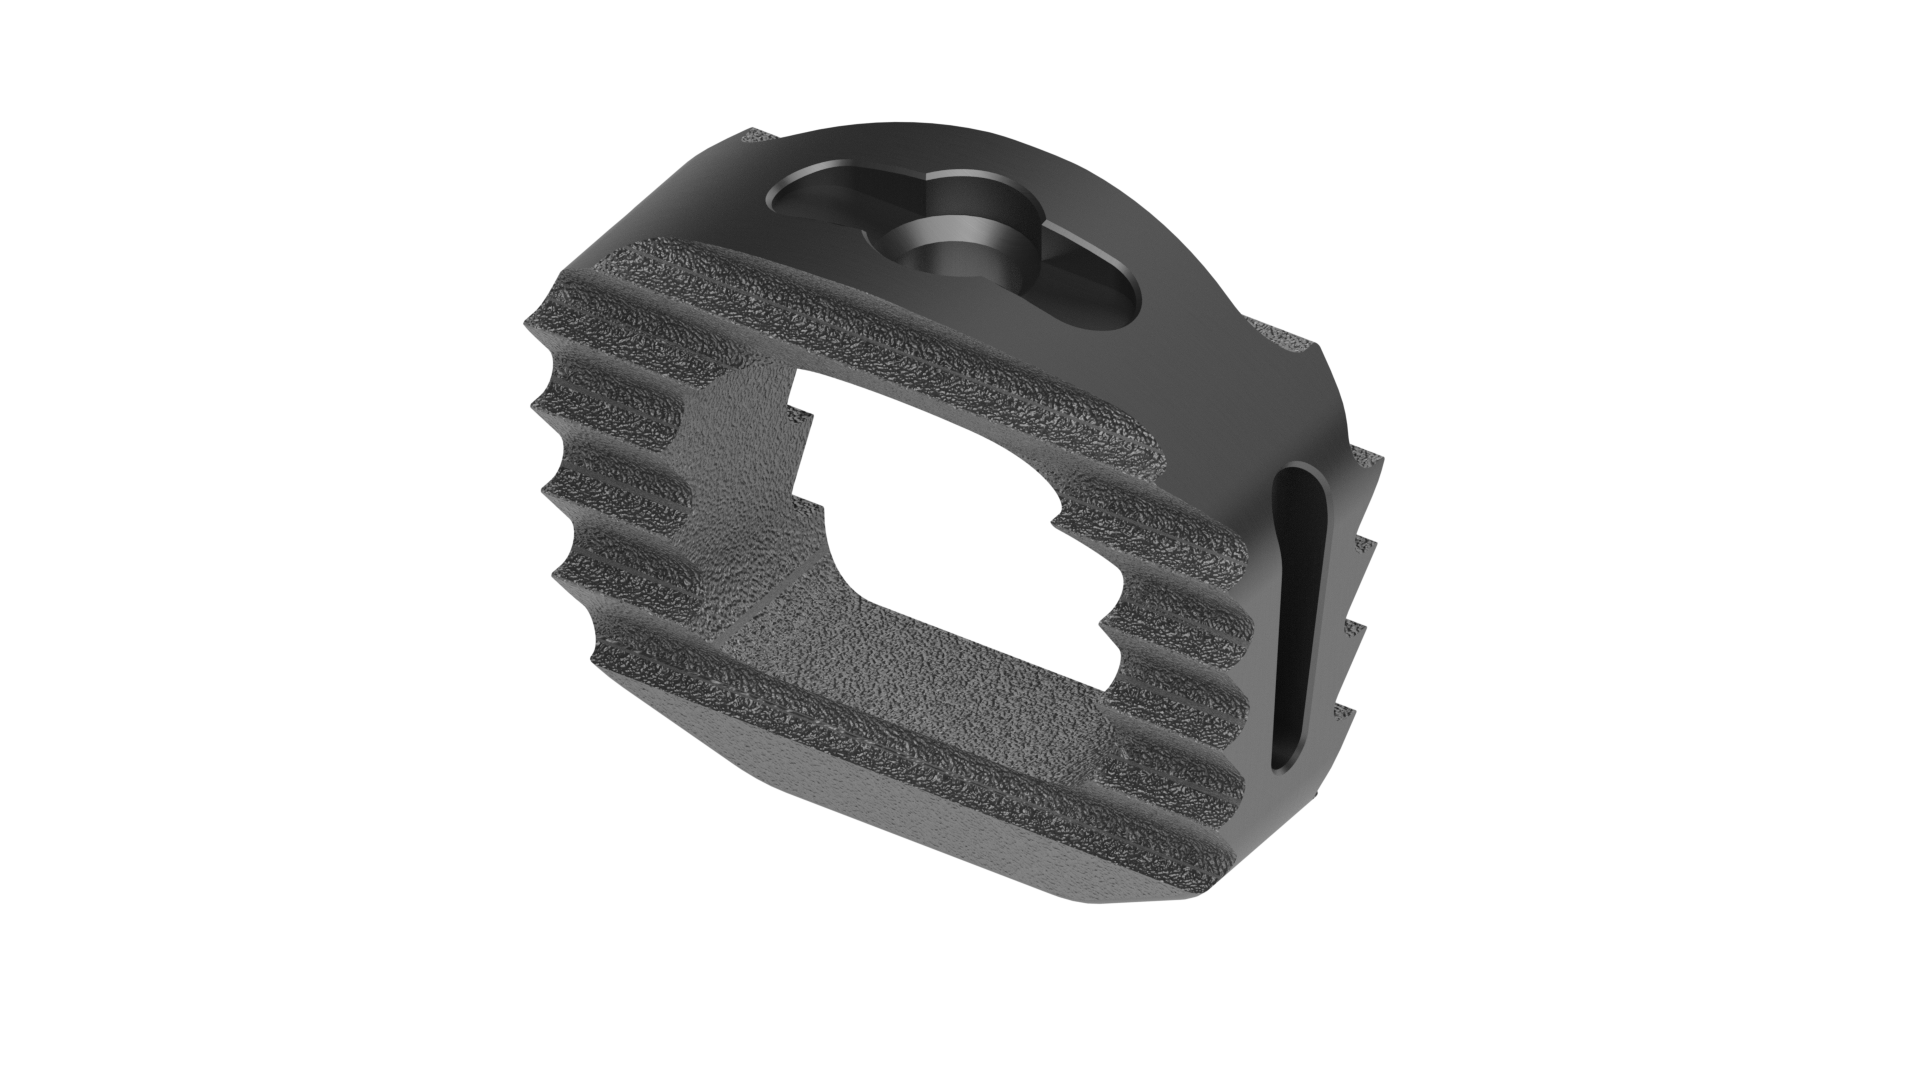 top view of a cervical interbody fusion device / cage with teeth on both sides and a large central opening